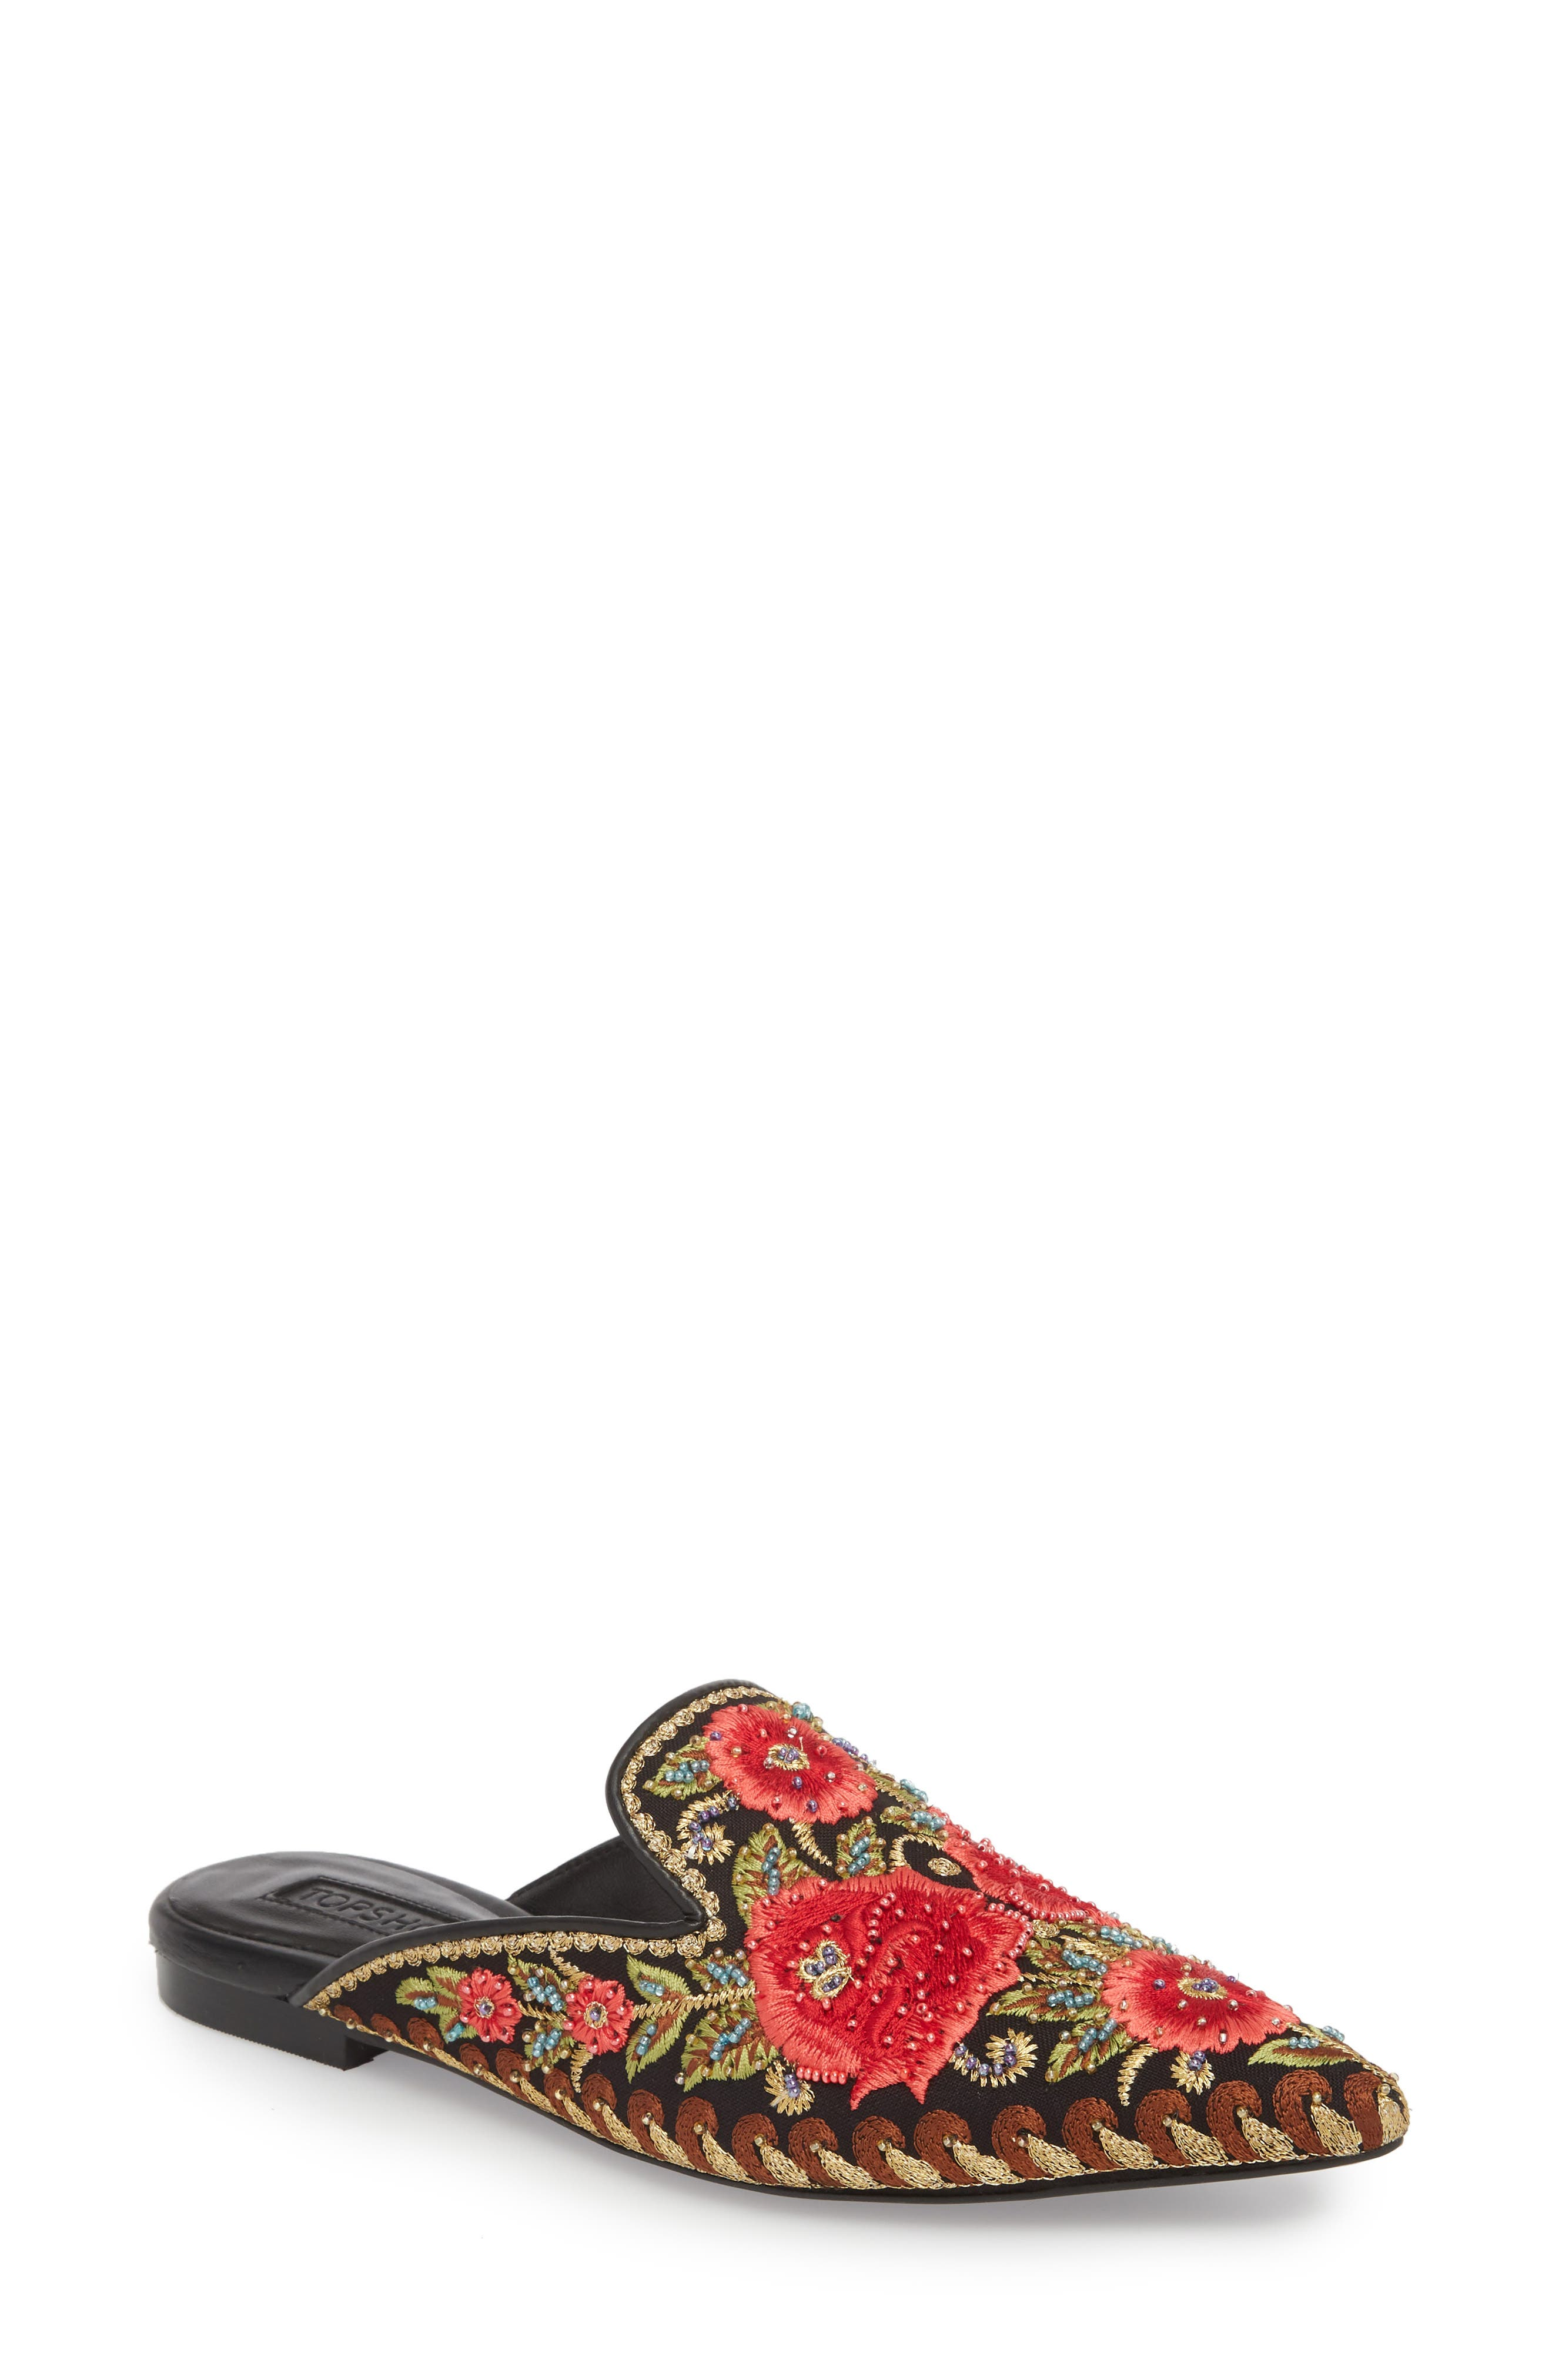 Katja Embroidered Mule,                             Main thumbnail 1, color,                             Black Multi